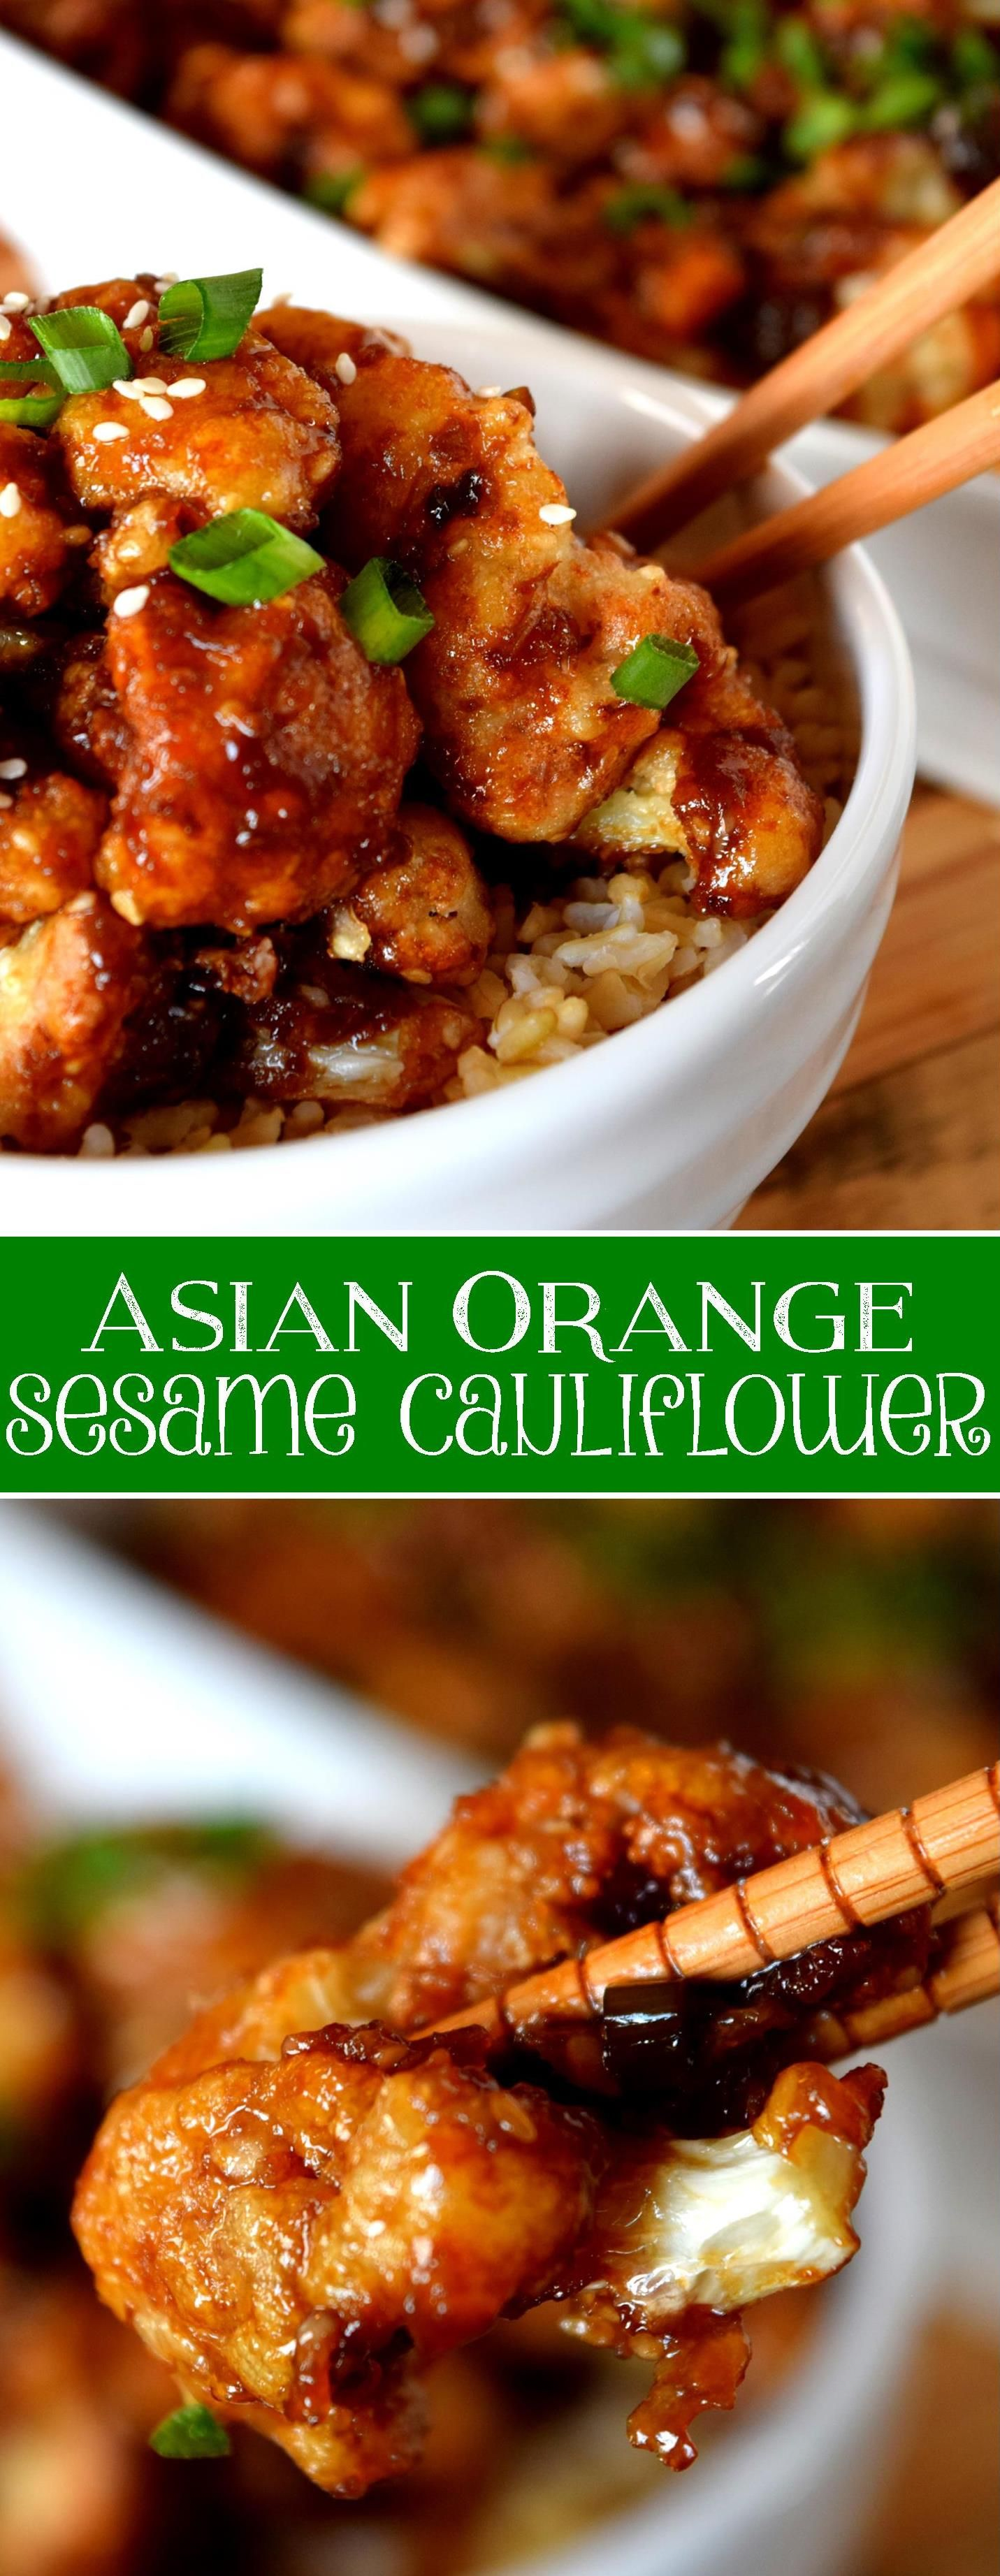 Asian Orange Sesame Cauliflower- Don't love, don't hate. Chris likes, but it's d…